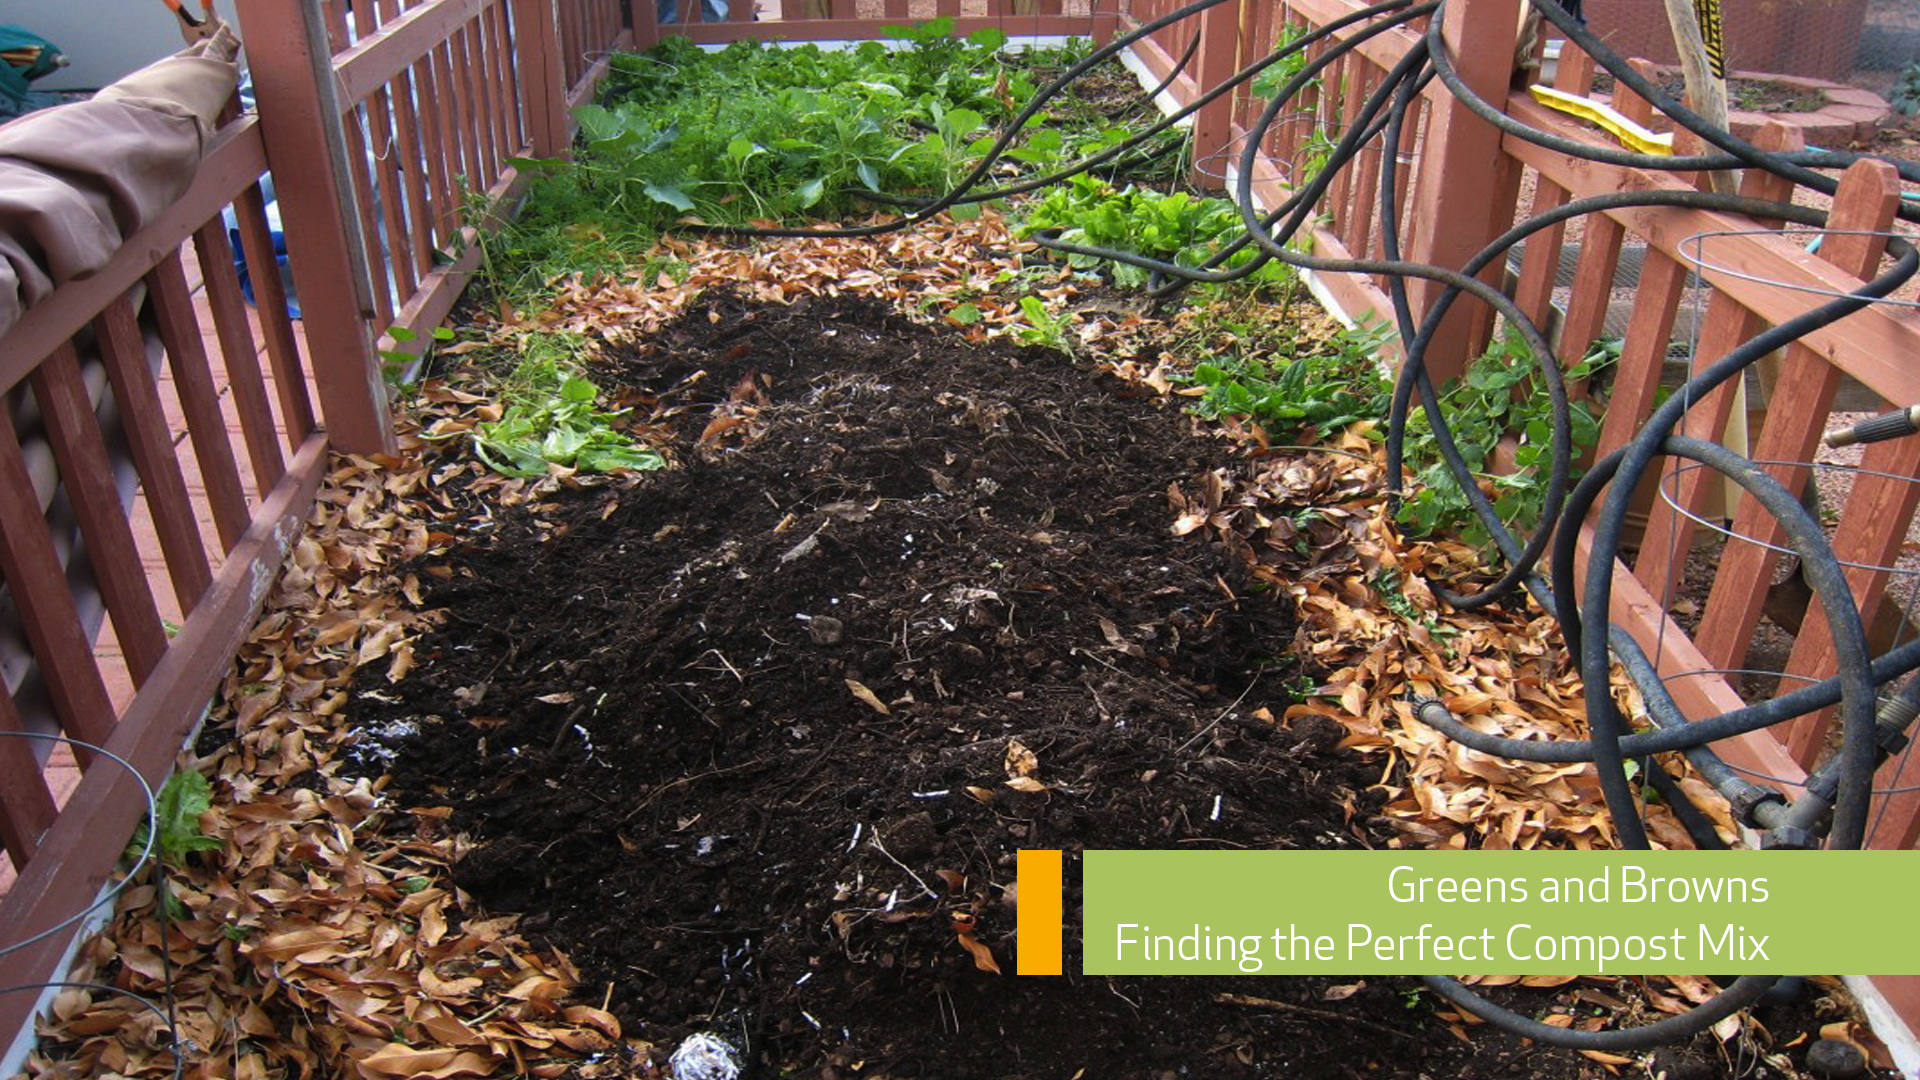 Greens and Browns Composting Mix Ratio Main